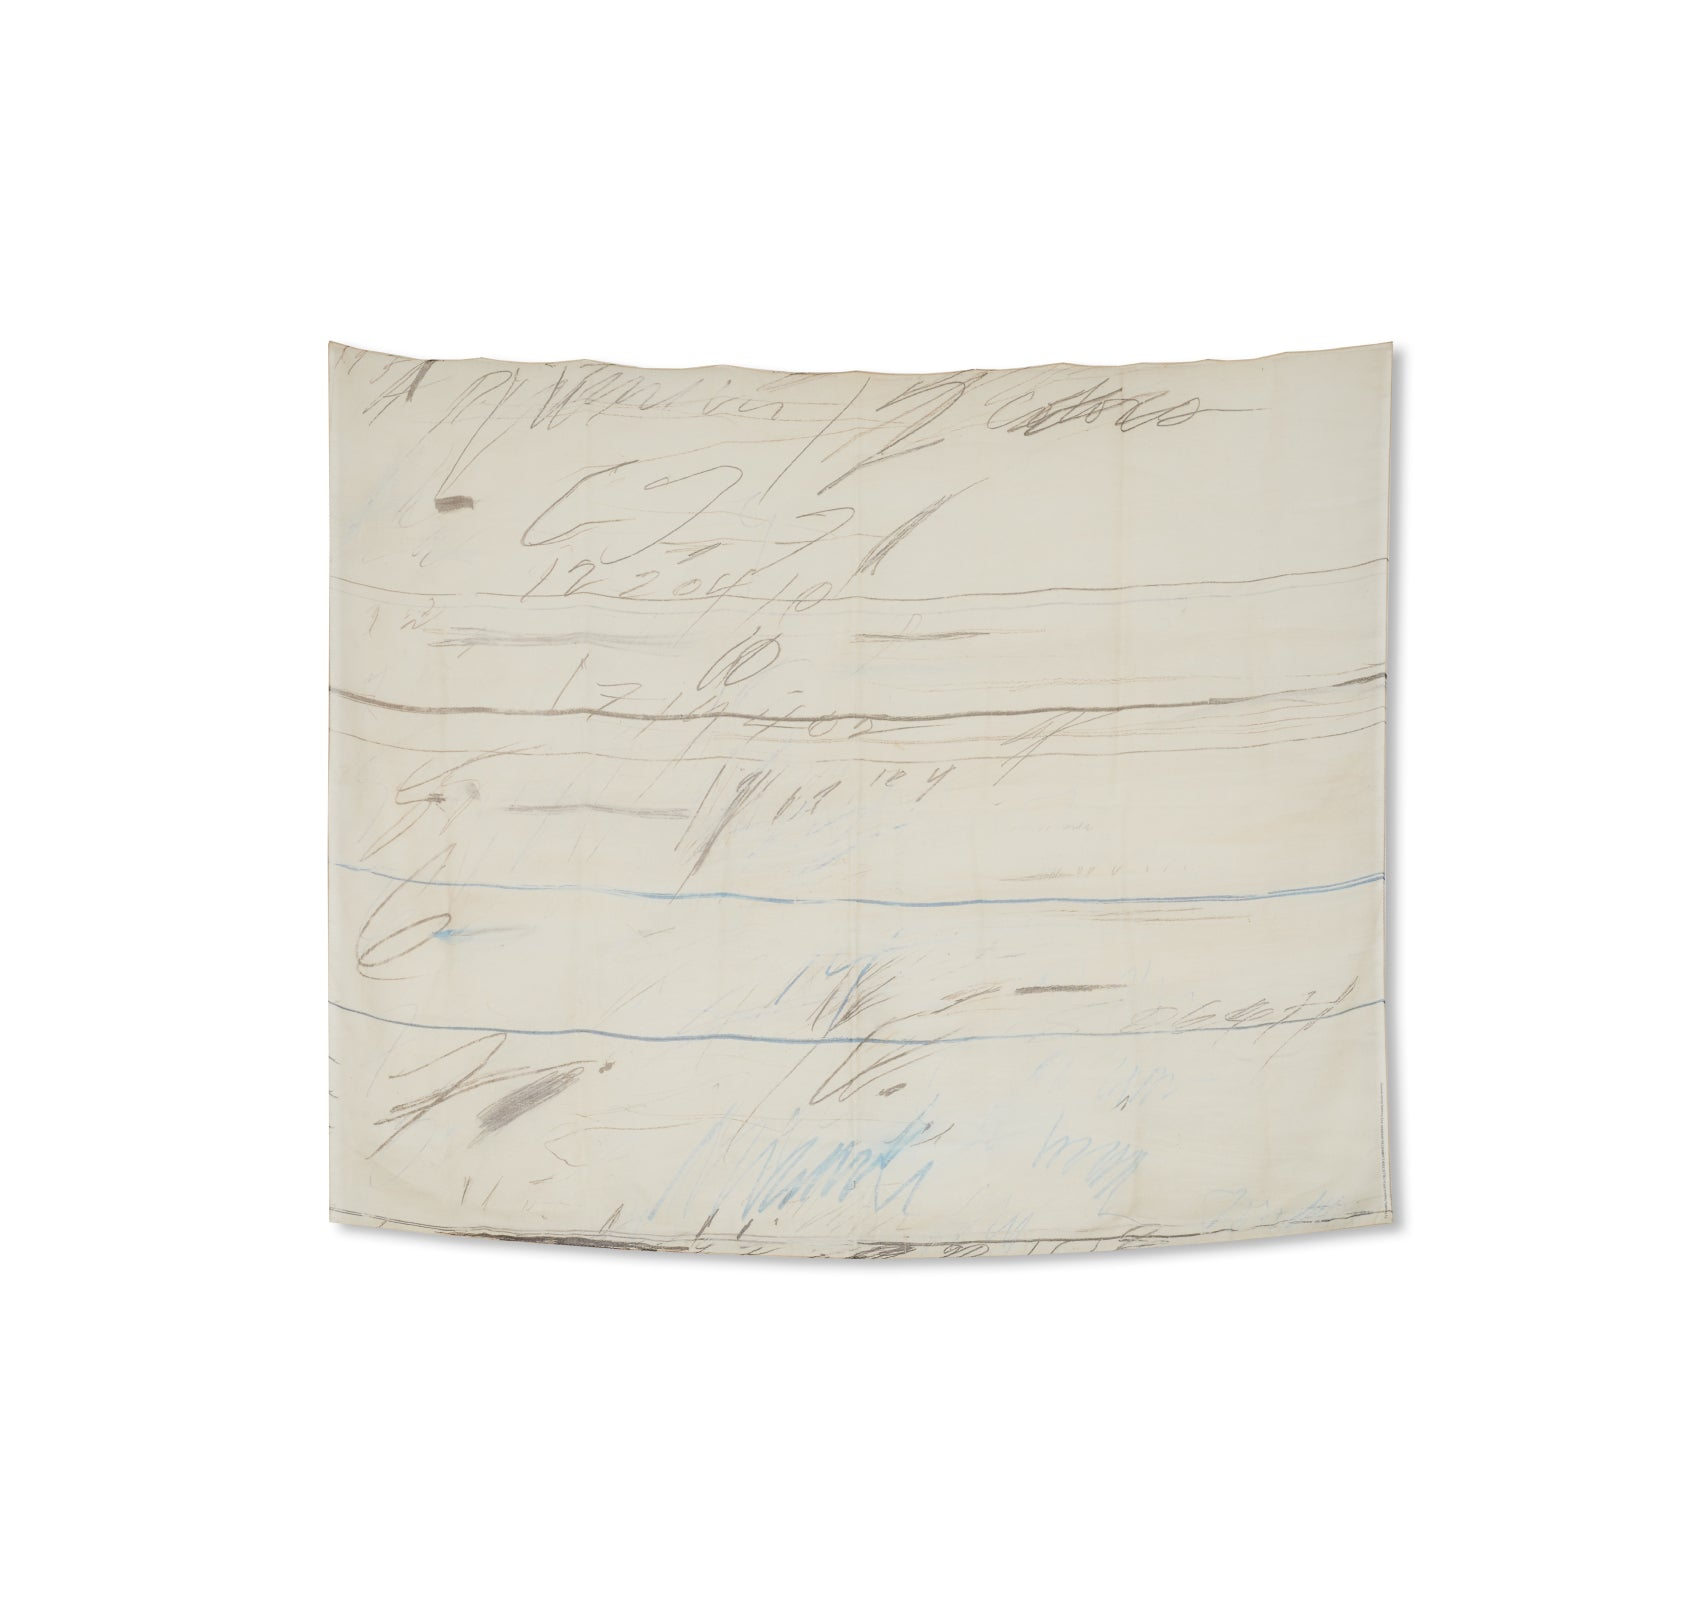 SCARF '1971' by Cy Twombly